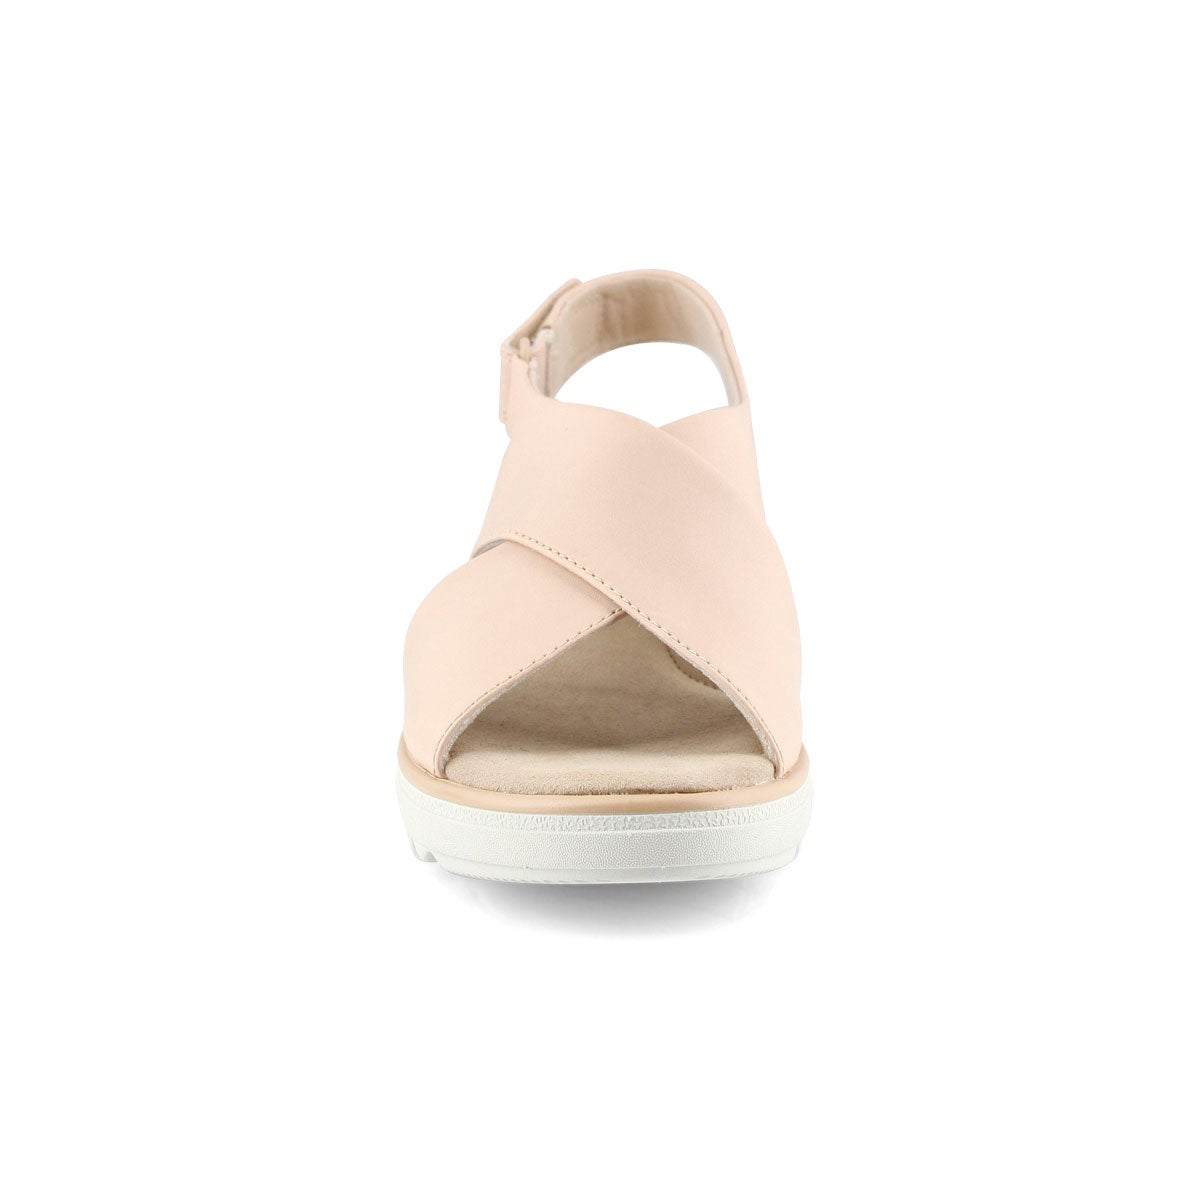 Lds Jillian Jewel blush wedge sandal